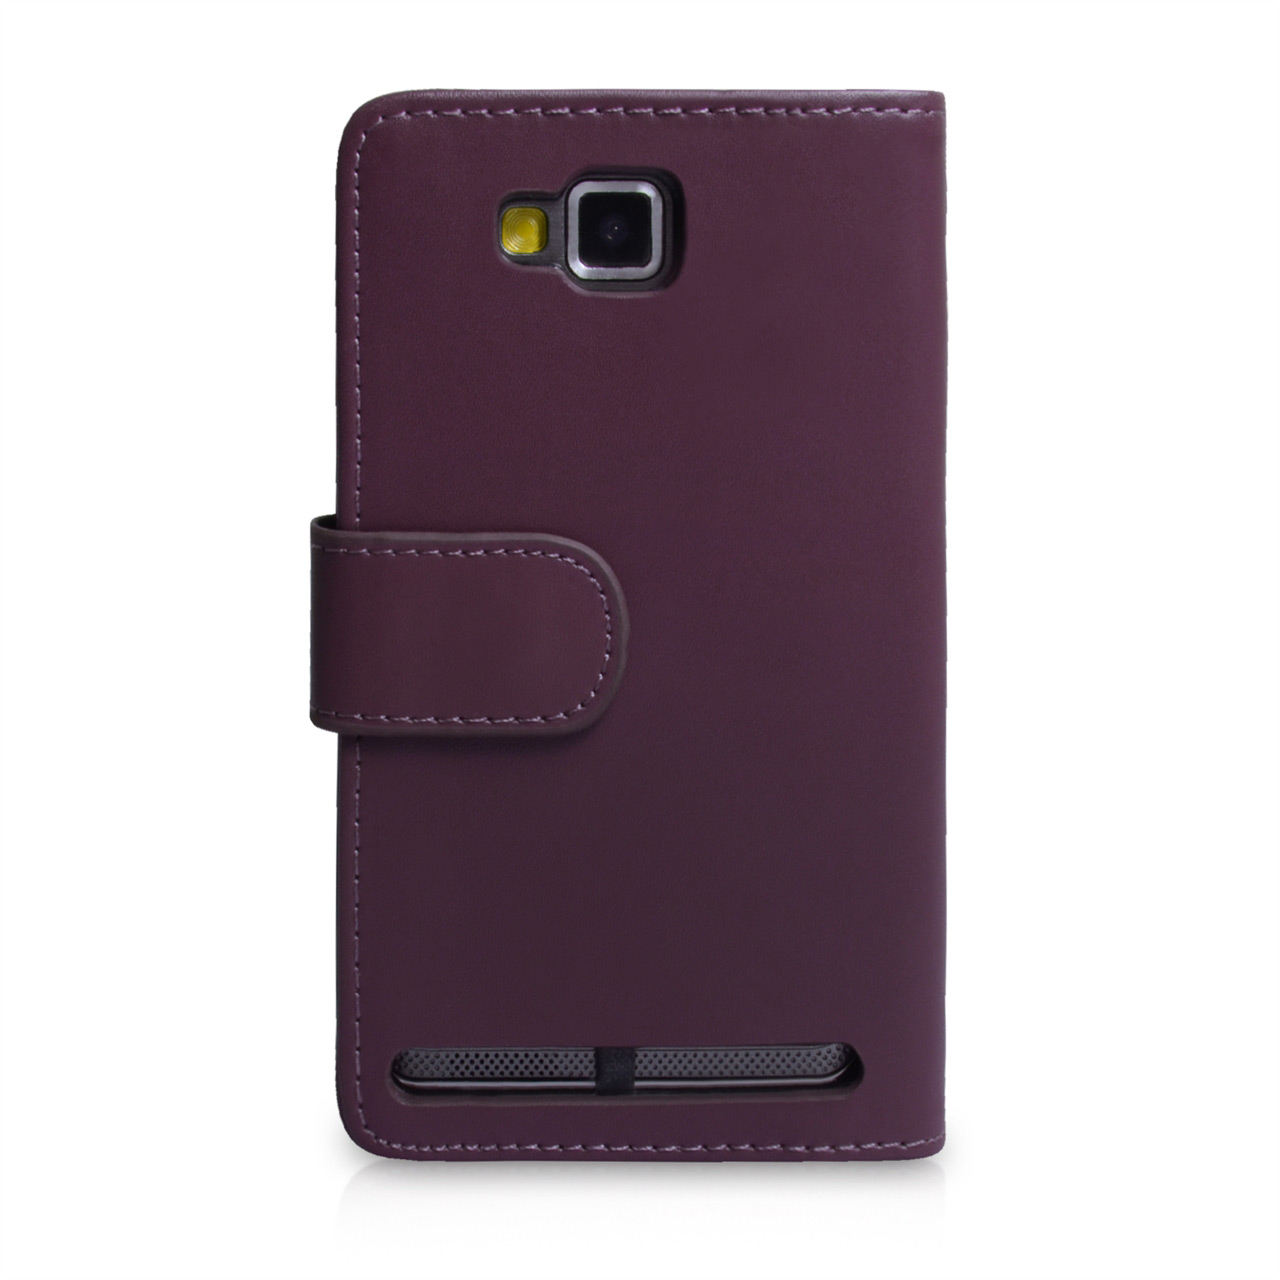 YouSave Accessories Samsung Ativ S Purple Leather Effect Wallet Case